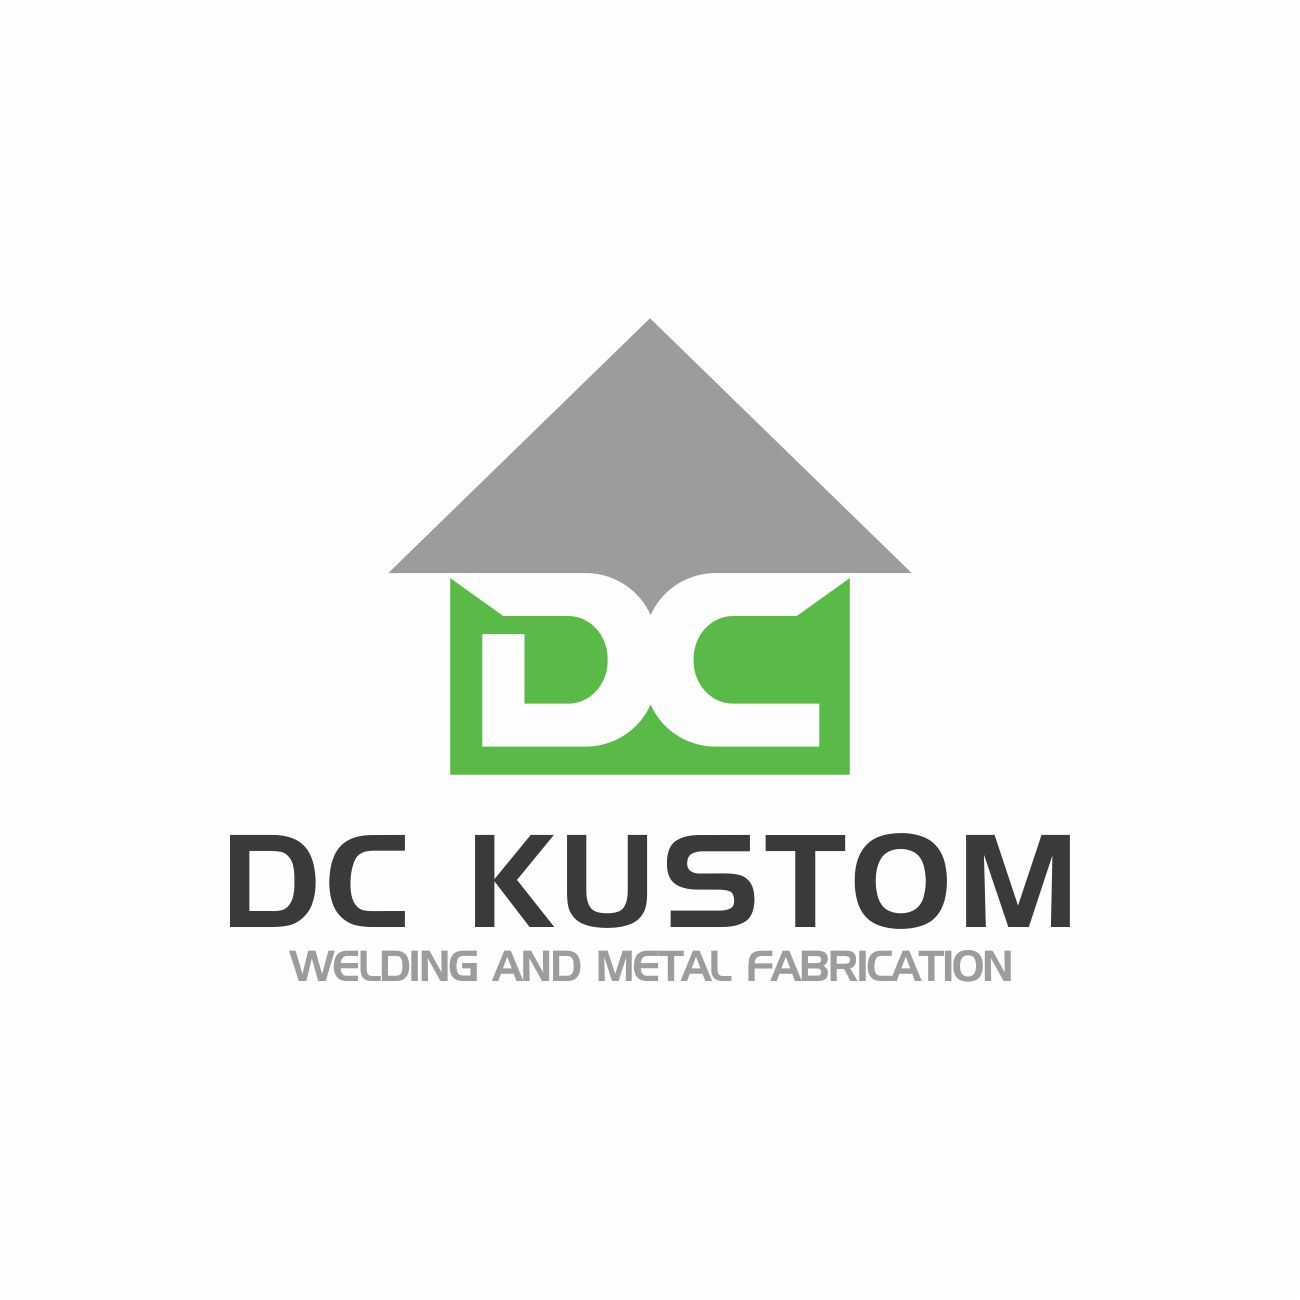 Logo Design by RasYa Muhammad Athaya - Entry No. 167 in the Logo Design Contest Imaginative Logo Design for DC KUSTOM WELDING & METAL FABRICATION.